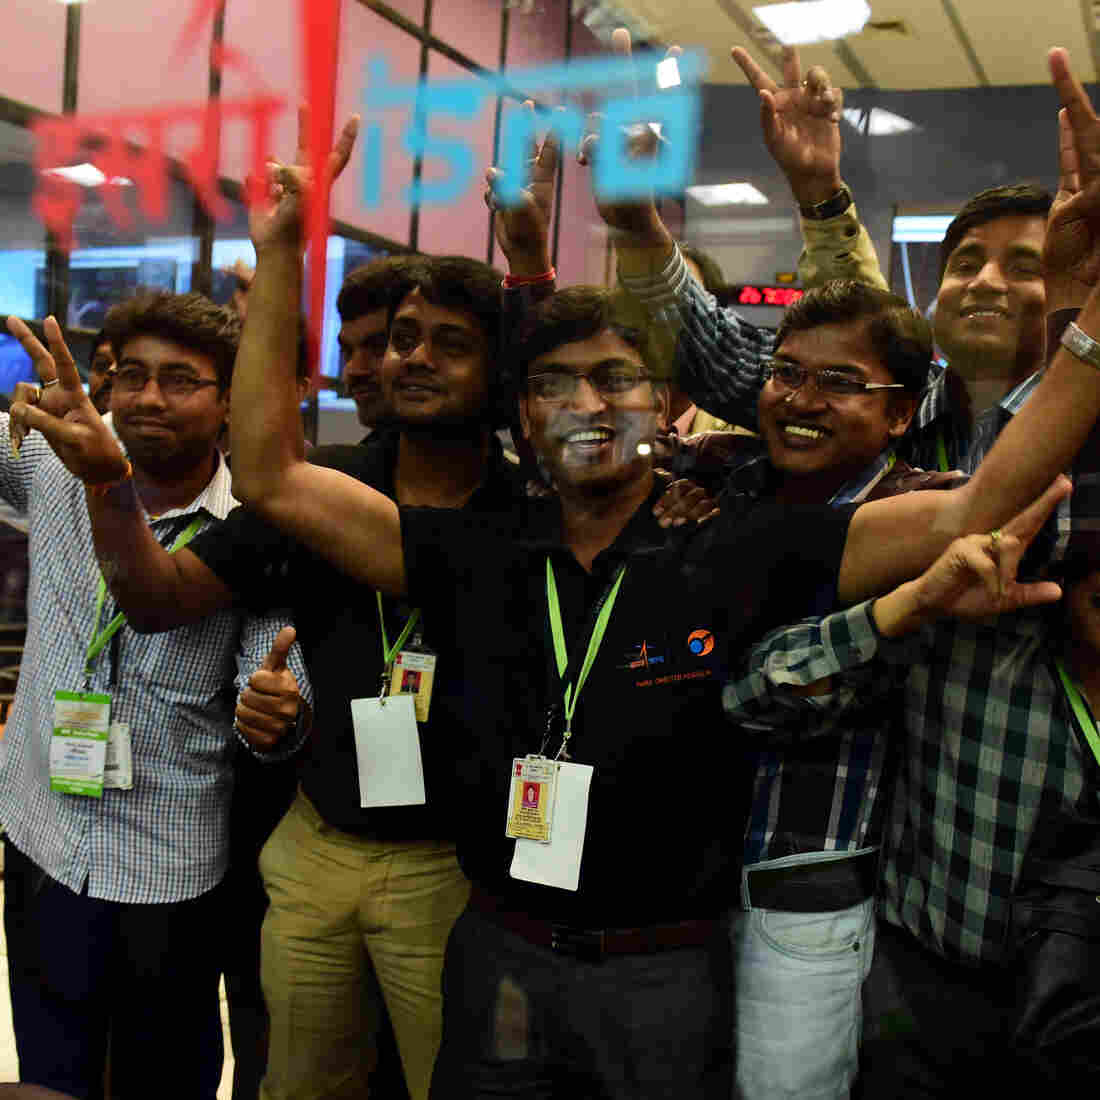 Scientists and officials of Indian Space Research Organization pose for photos as they celebrate the success of Mars Orbiter Mission (MoM) on Wednesday.